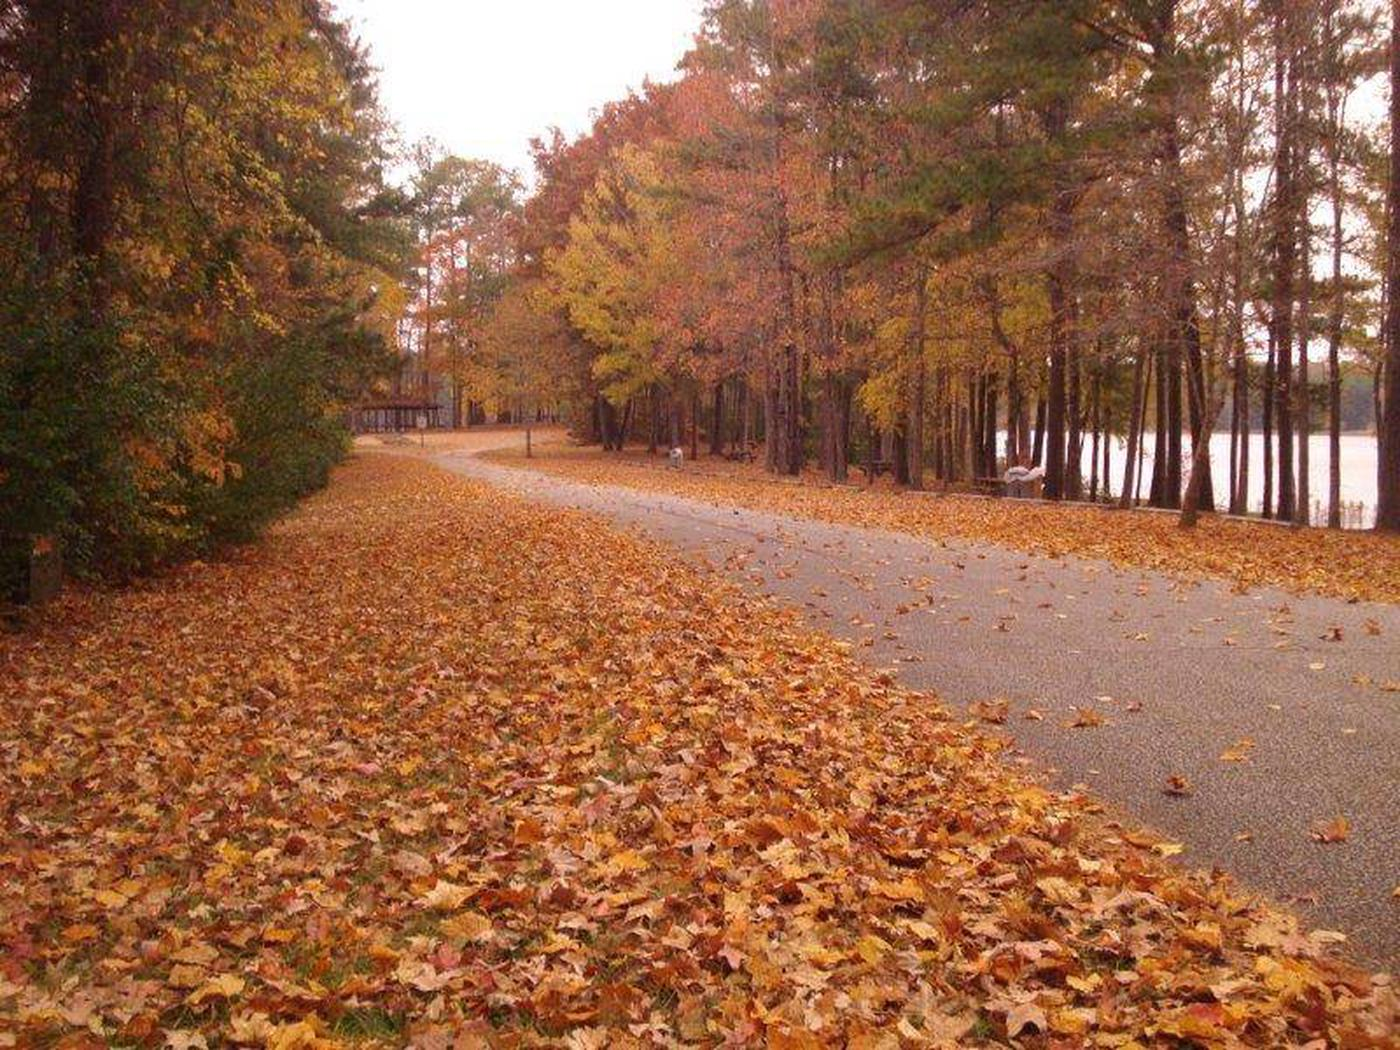 This is why they call it fallthis is why they call it fall